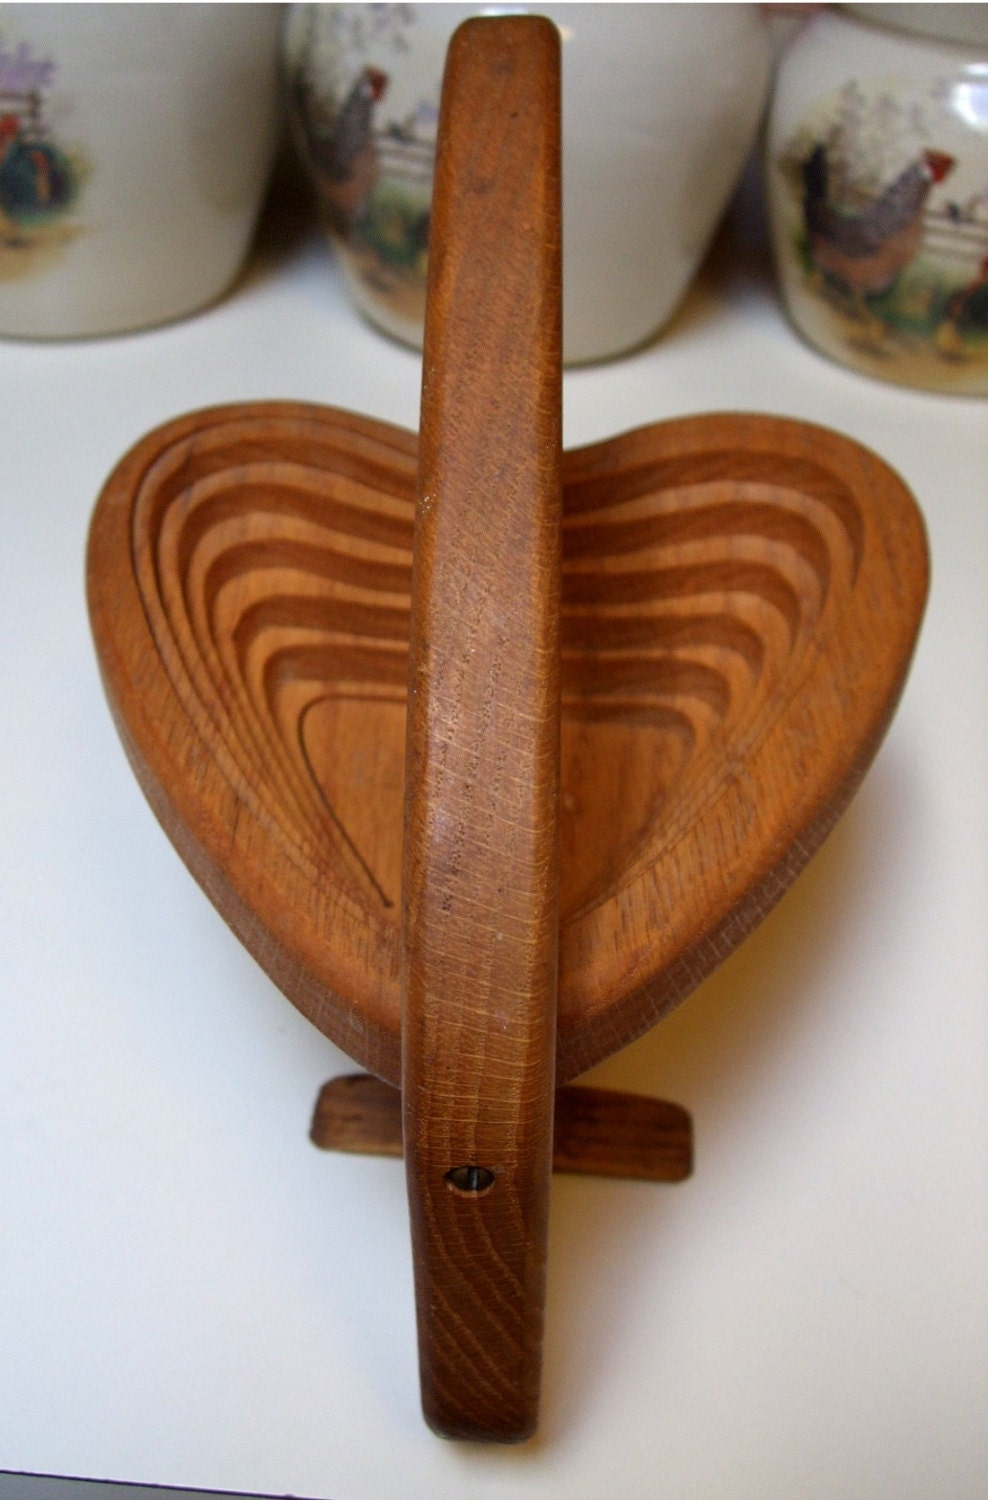 Vintage Wooden Oak Heart Shaped Candy Bowl Dish Collapsible